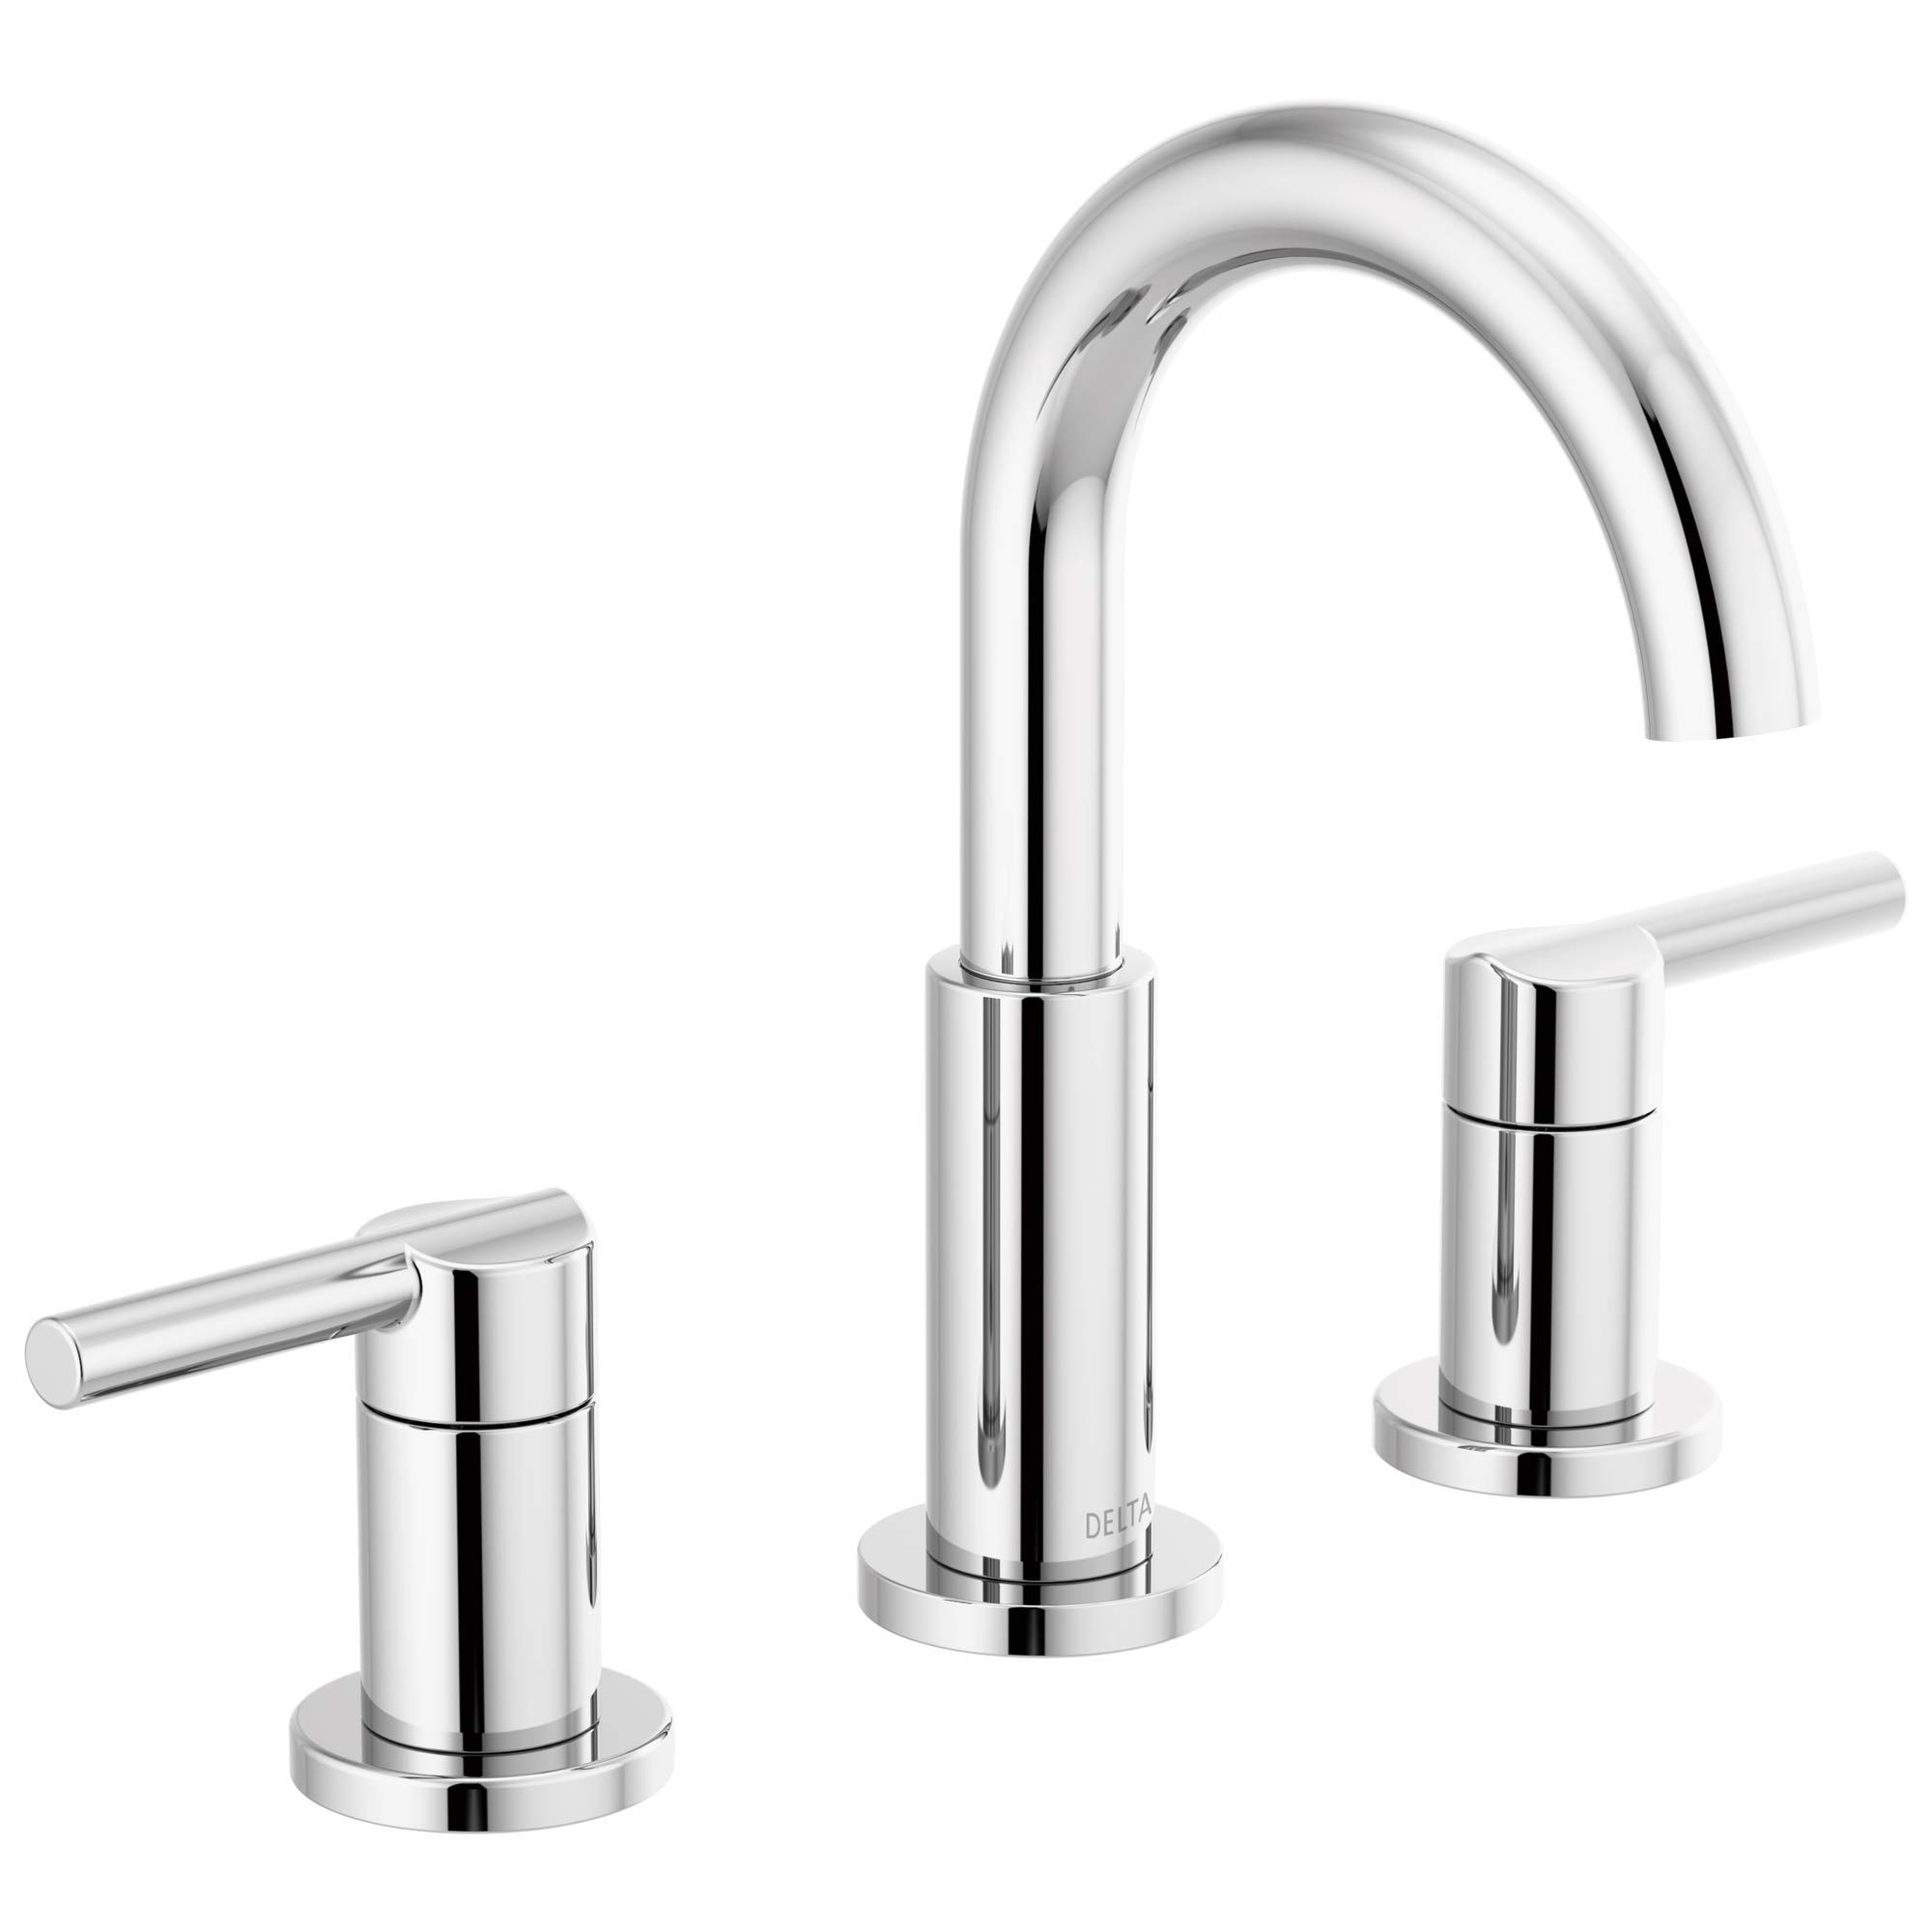 Delta Faucet Nicoli Widespread Bathroom Faucet Chrome Bathroom Faucet 3 Hole Bathroom Sink Faucet Drain Assembly Chrome 35749lf Amazon Com